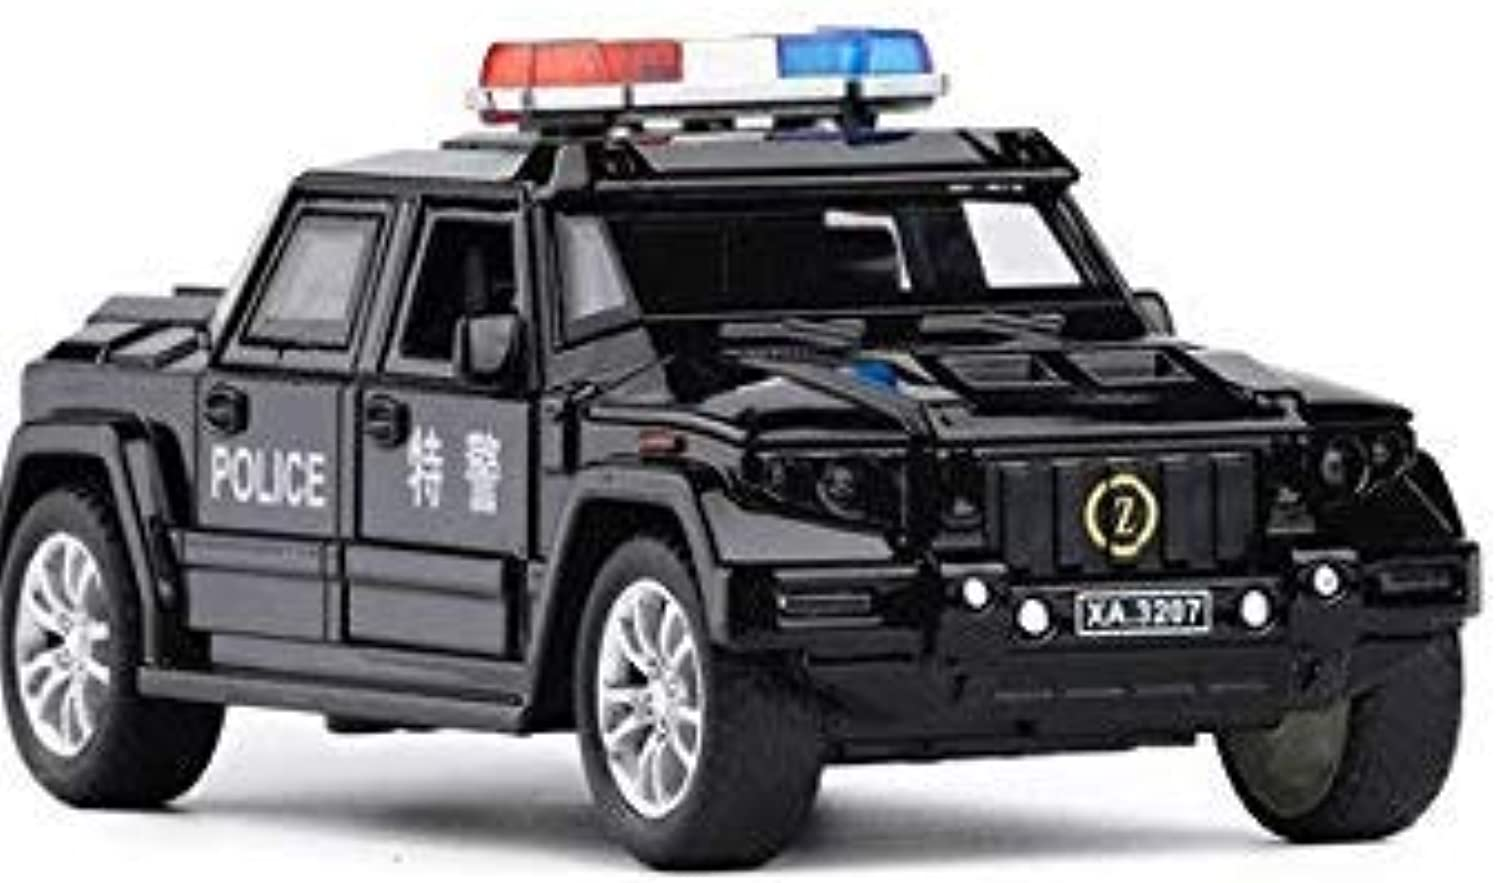 1 1 1 32 Scale Police Kaibahe War Shield Metal Toy Alloy Car